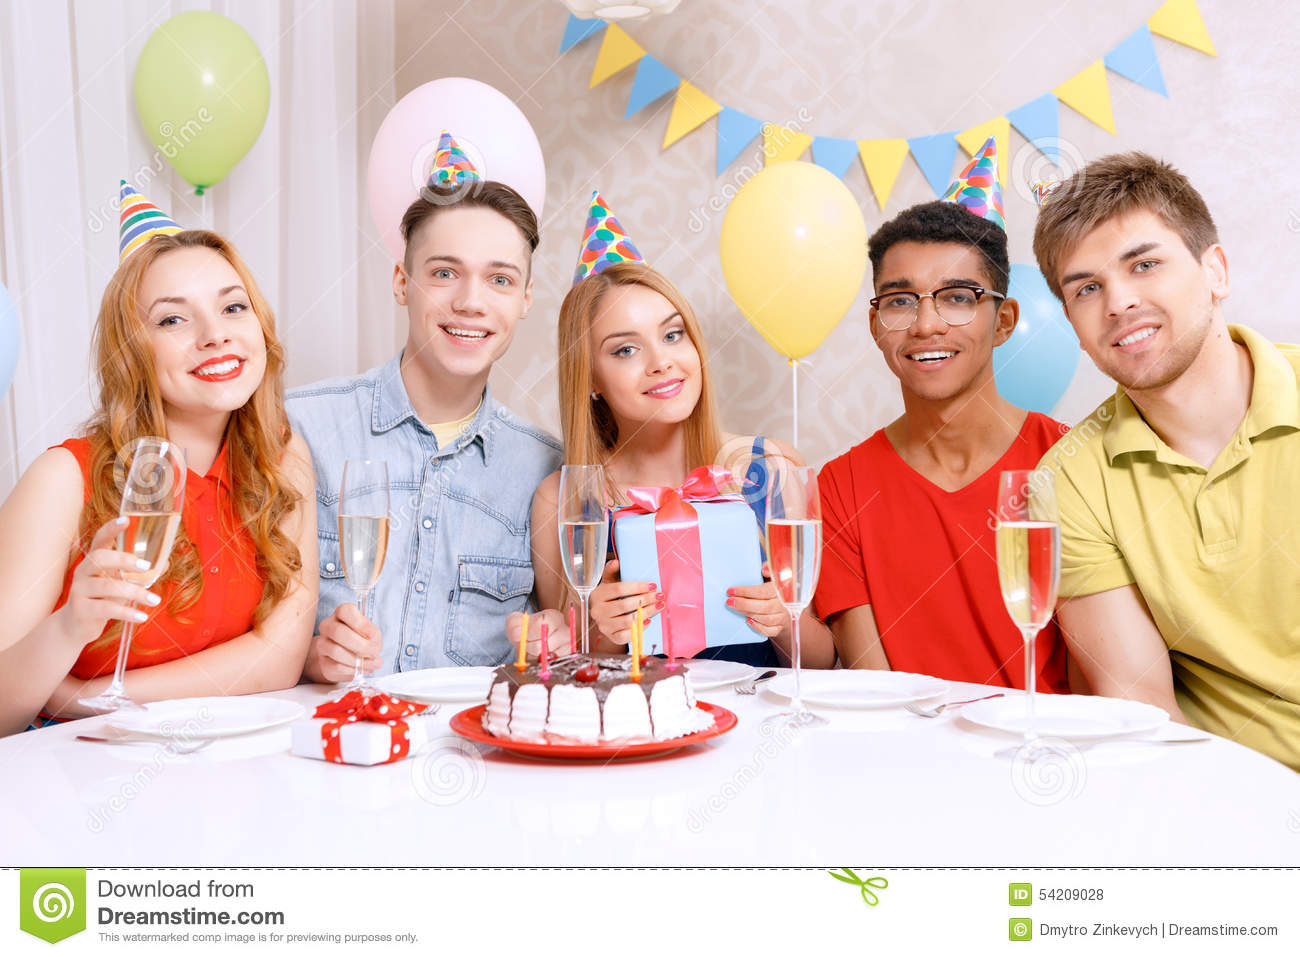 People Sitting At Table With Birthday Cake